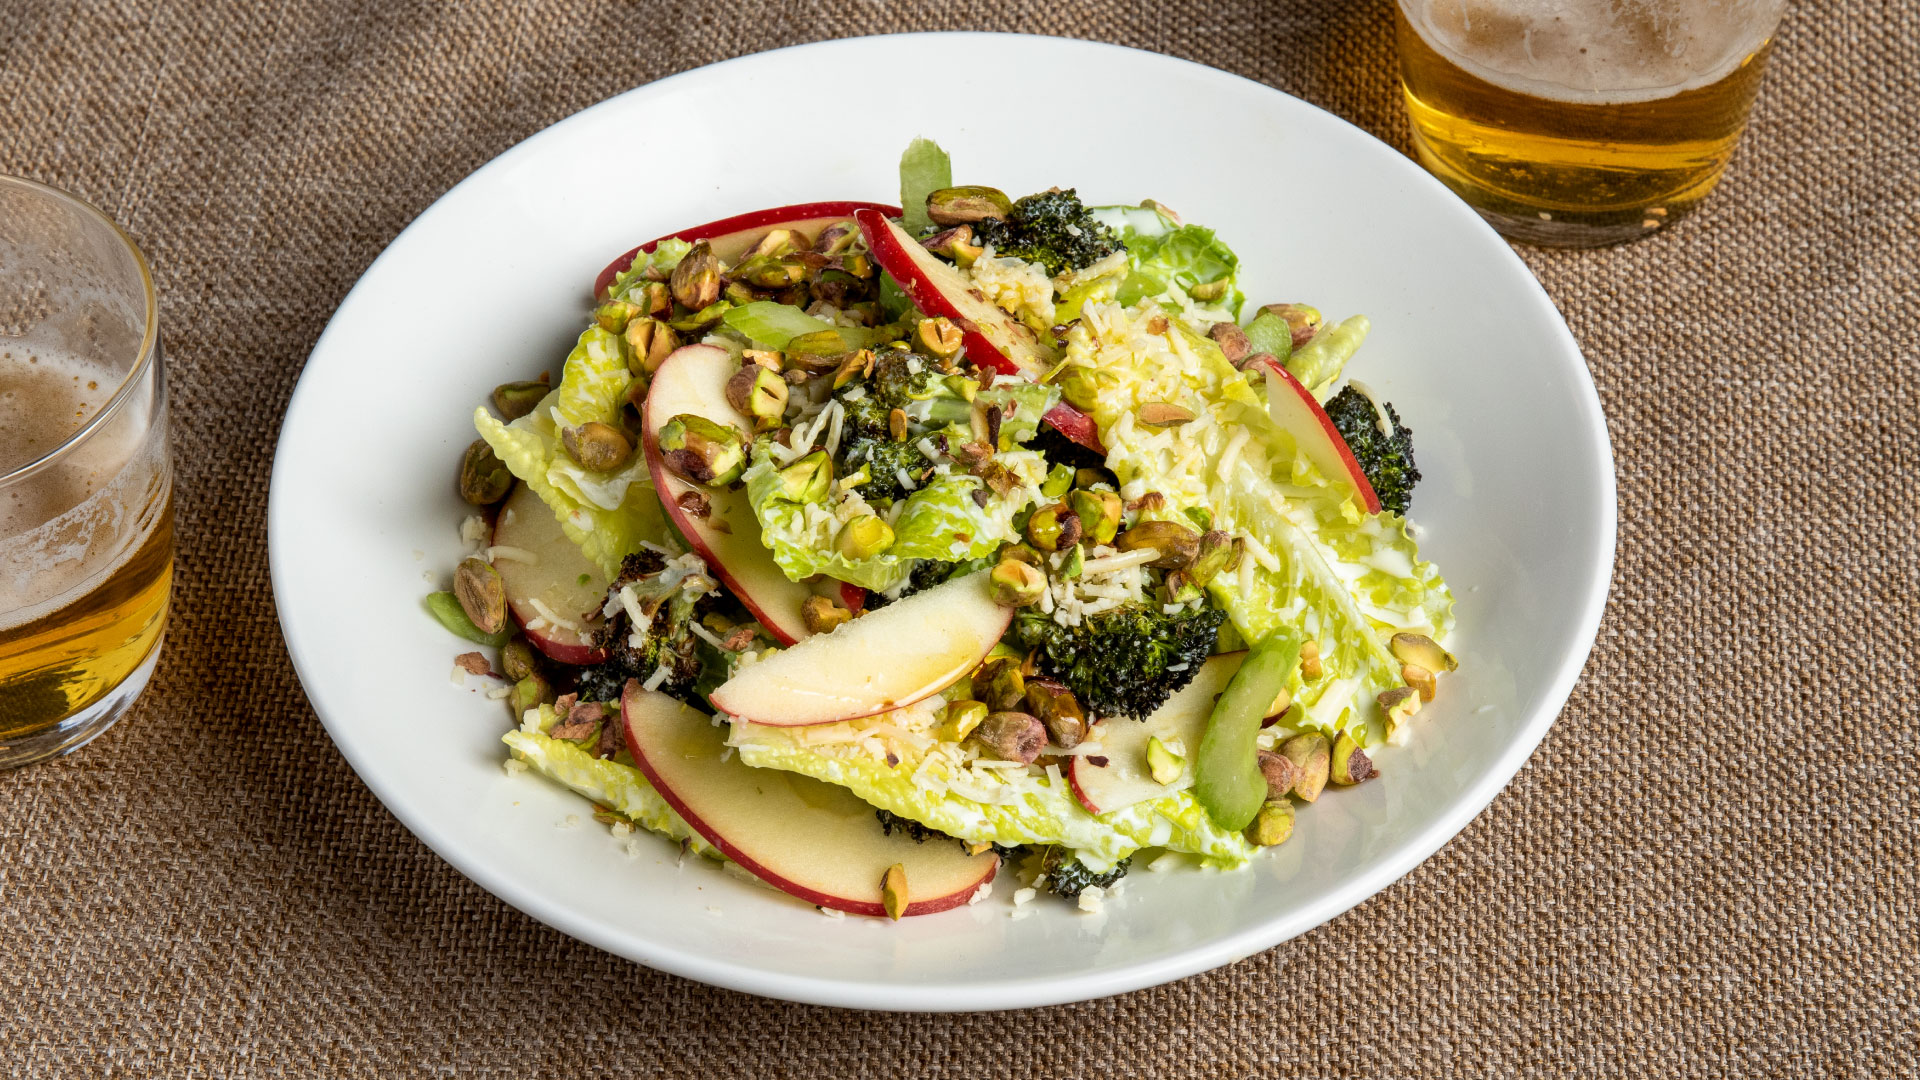 Roasted Broccoli & Beecher's Cheddar Salad